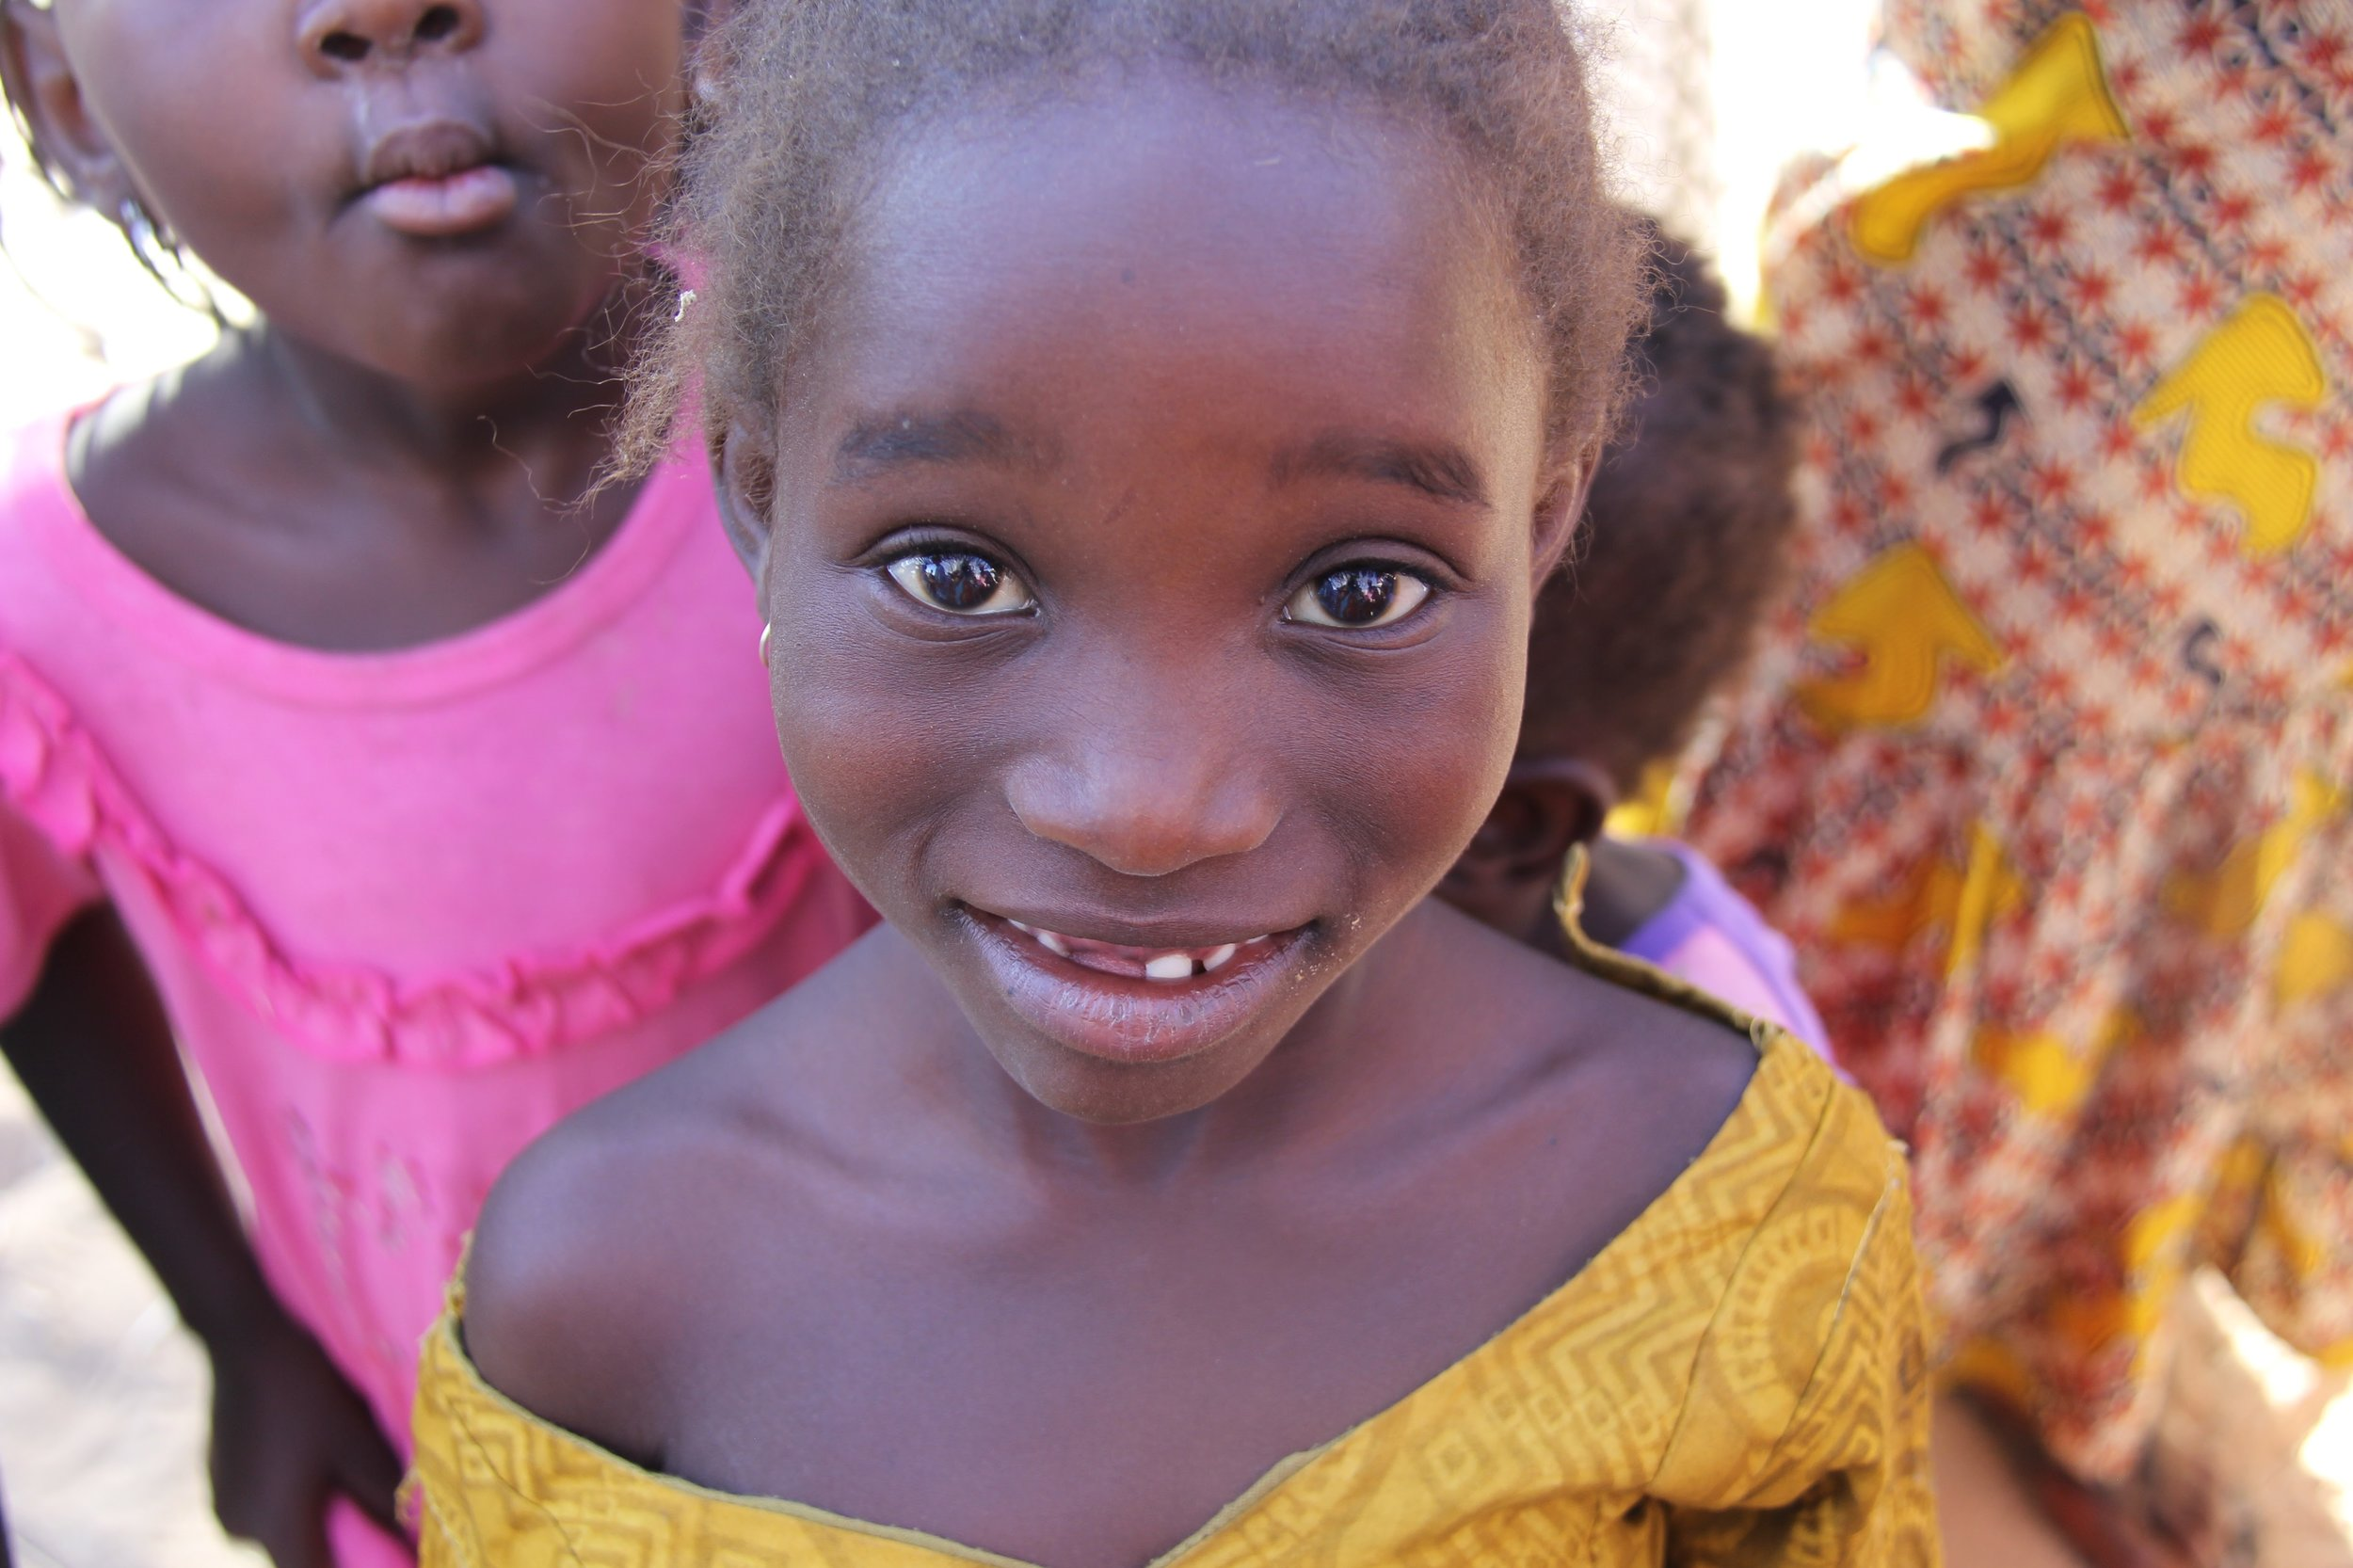 for just $50, we can send a child to school for a whole year - Education has to start early, our pre-school scholarship program provides a full year of preschool tuition for just $50